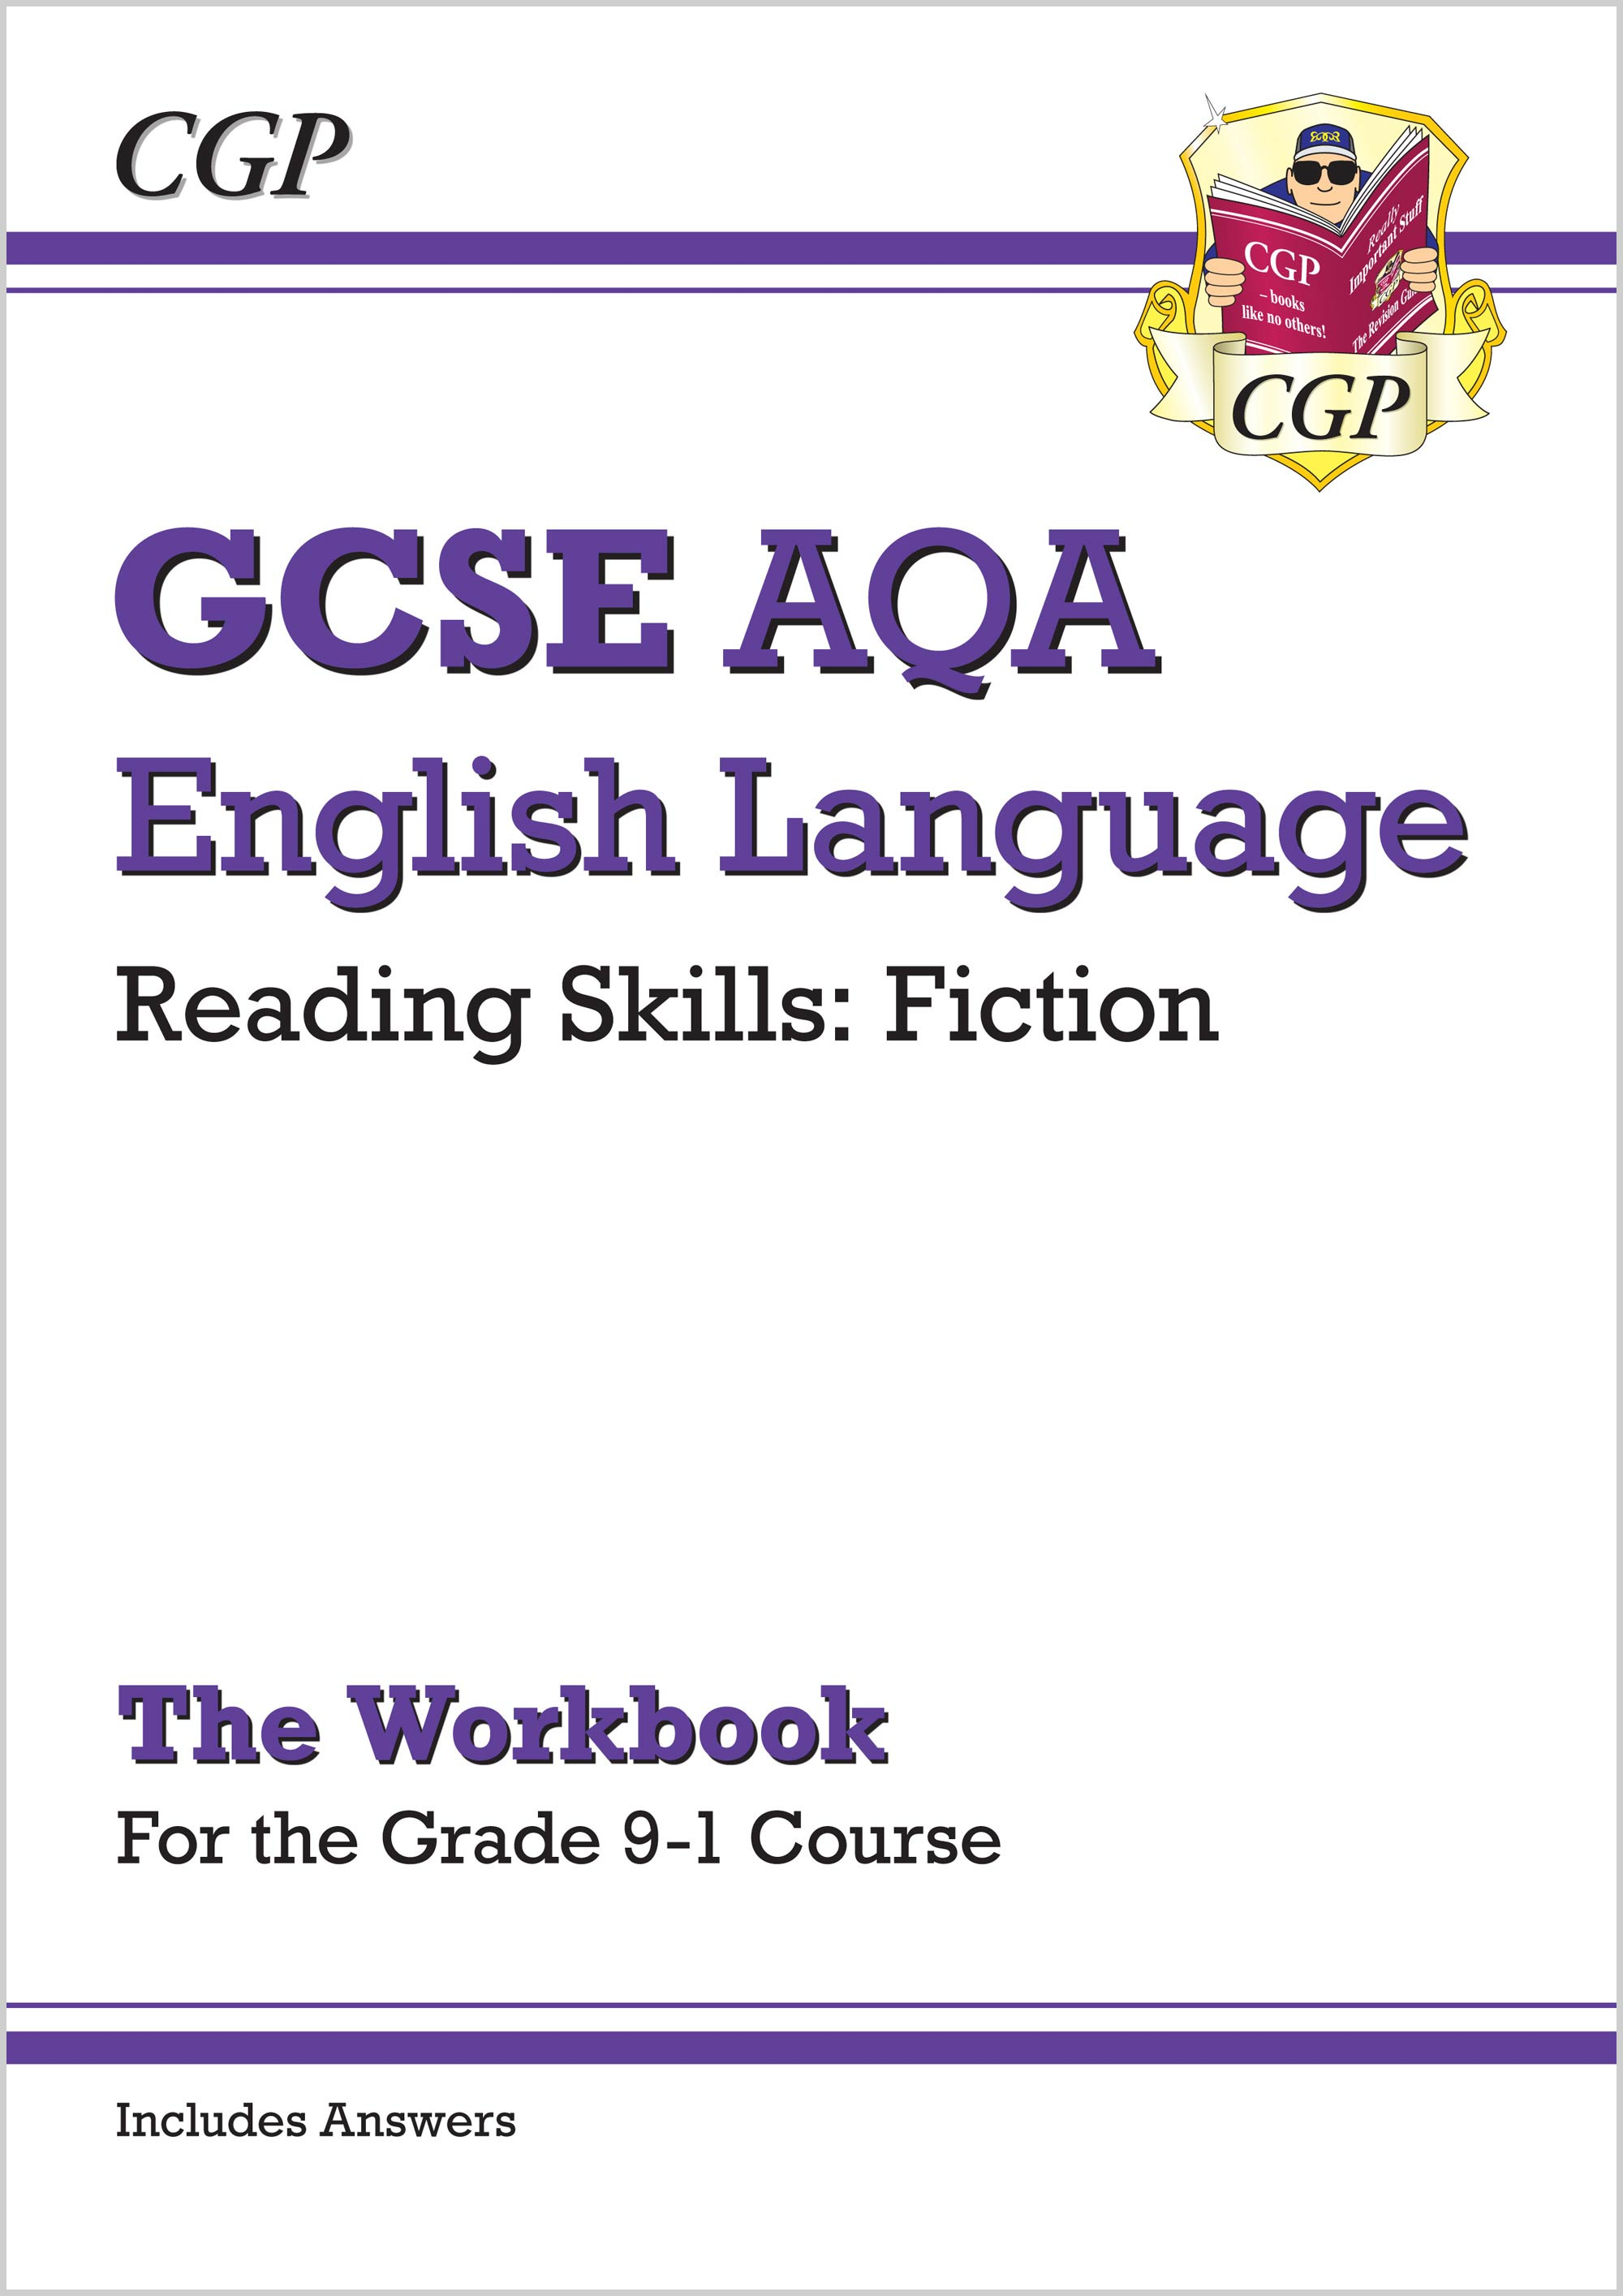 ENCAWF41 - New Grade 9-1 GCSE English Language AQA Reading Skills Workbook: Fiction (includes Answer